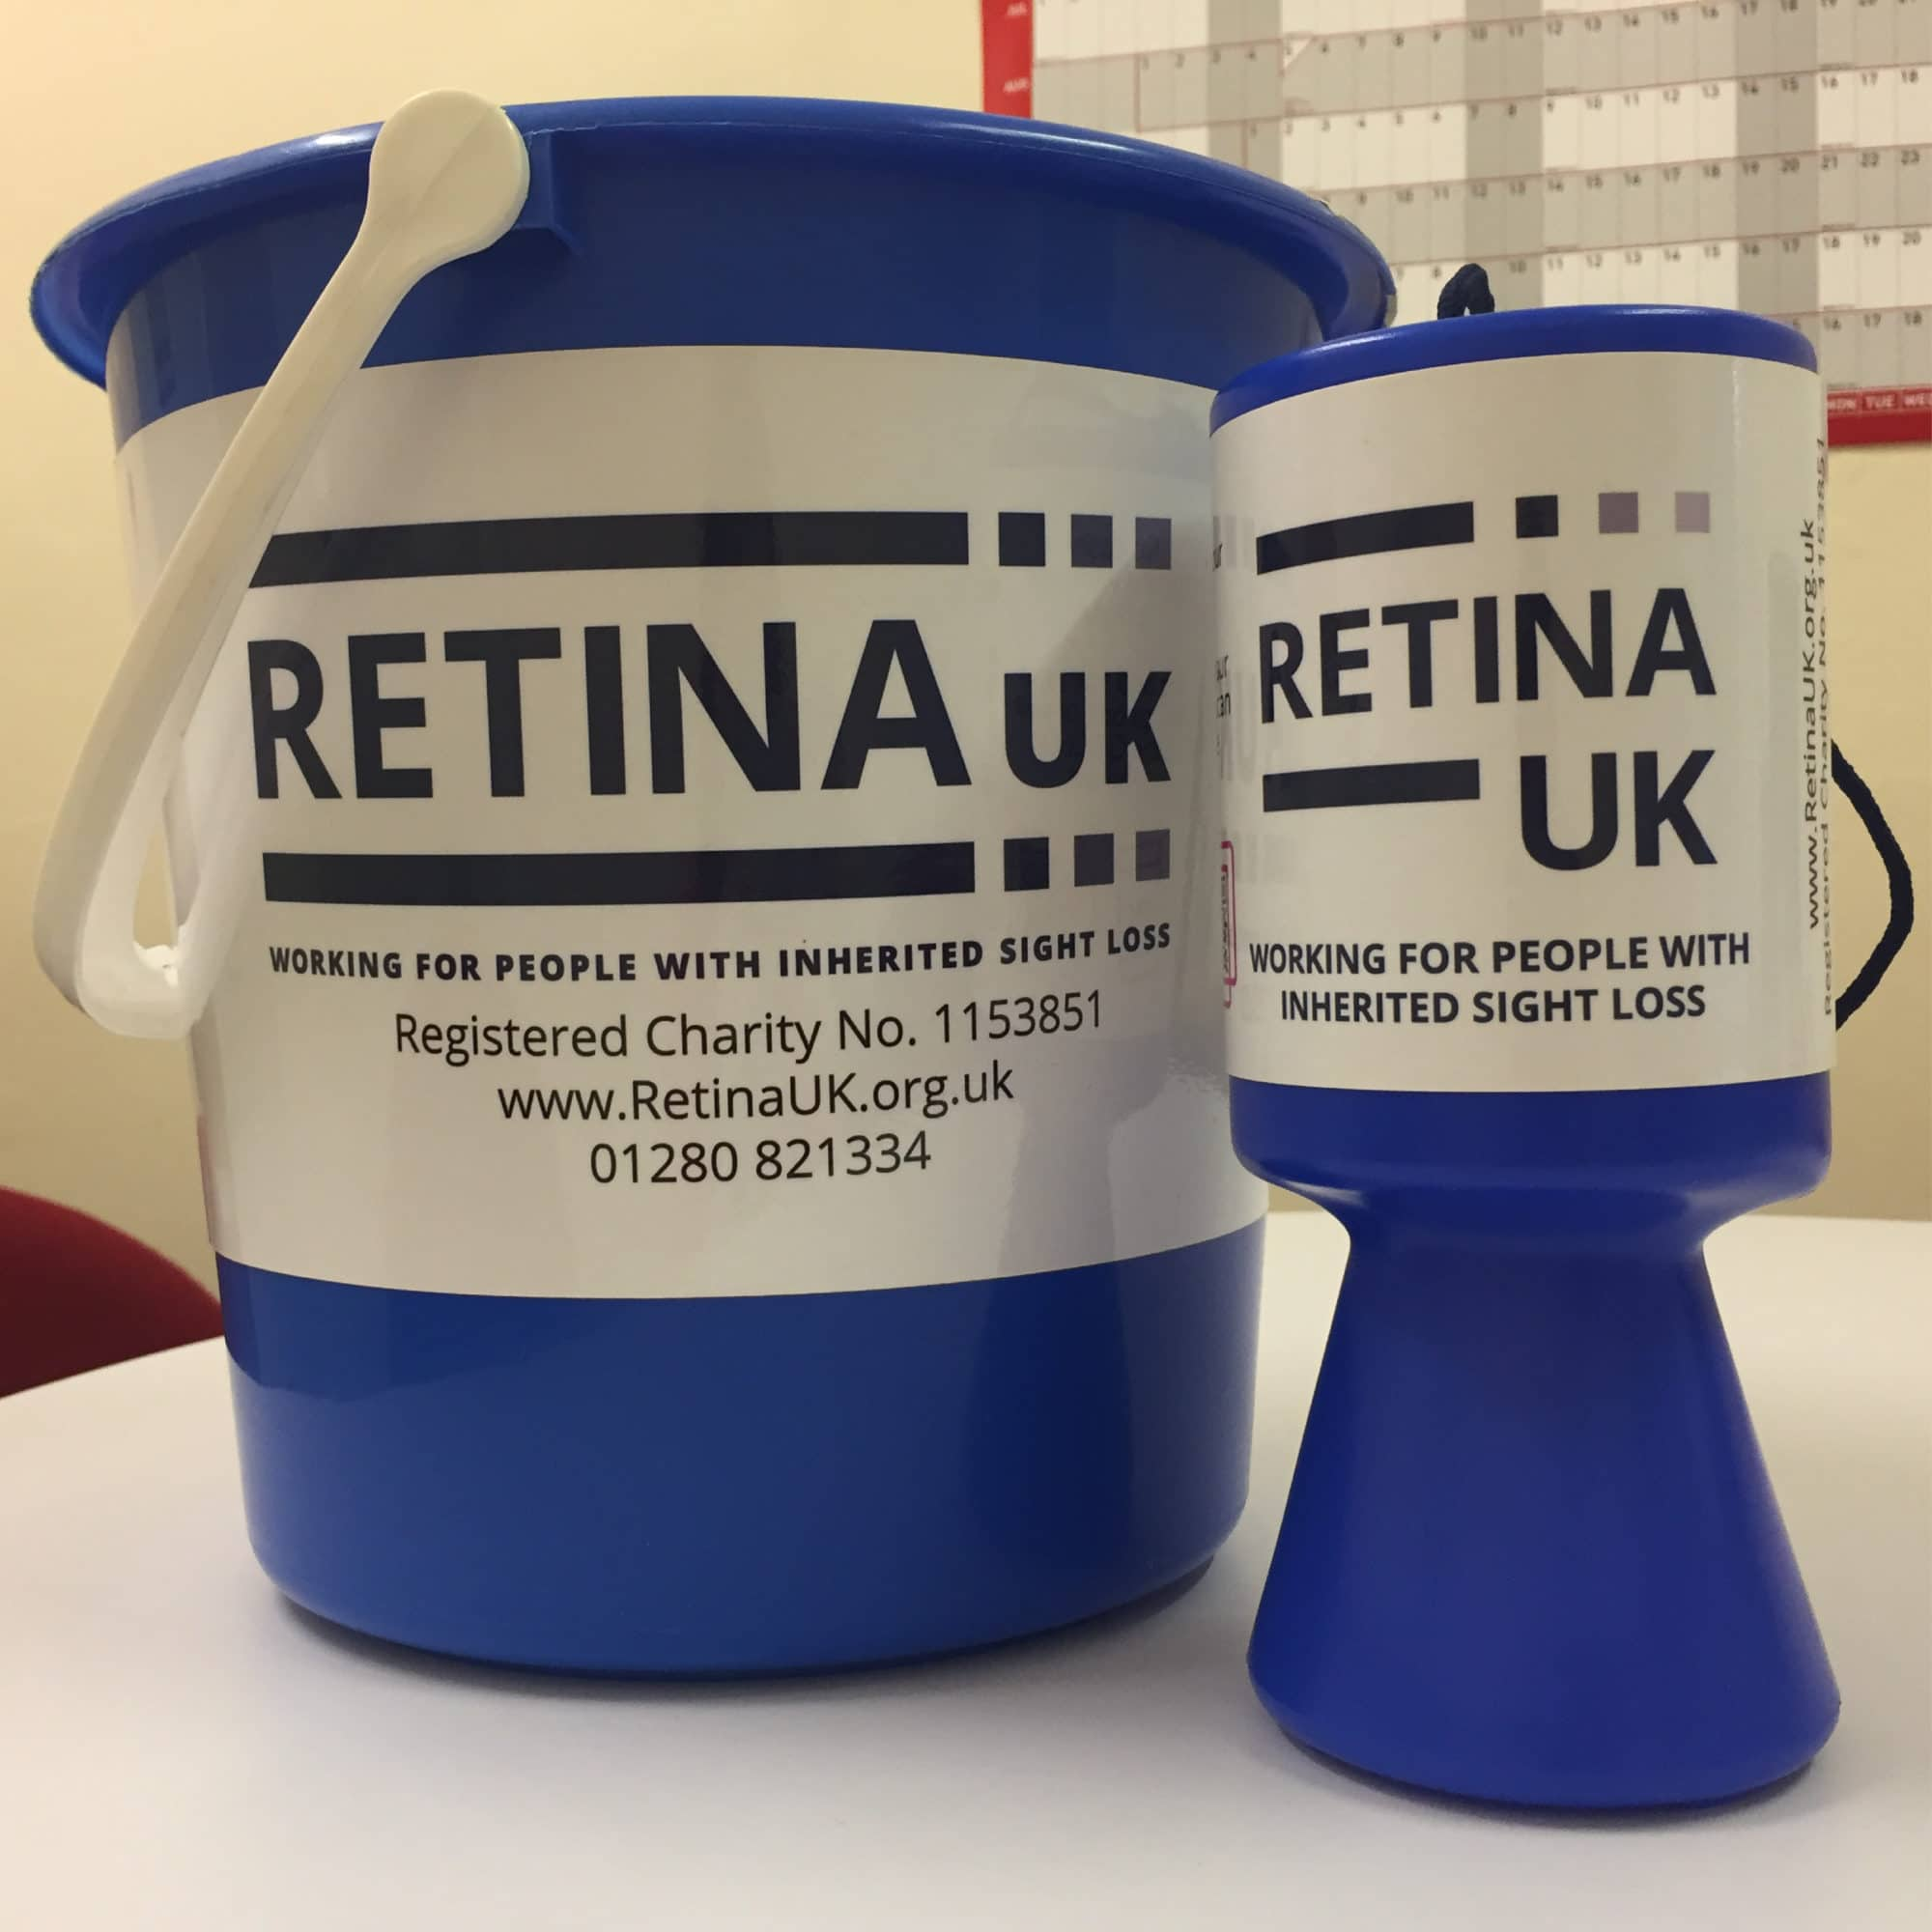 Image shows a blue collection bucket and tin both with white labels showing the Retina UK label in blue text